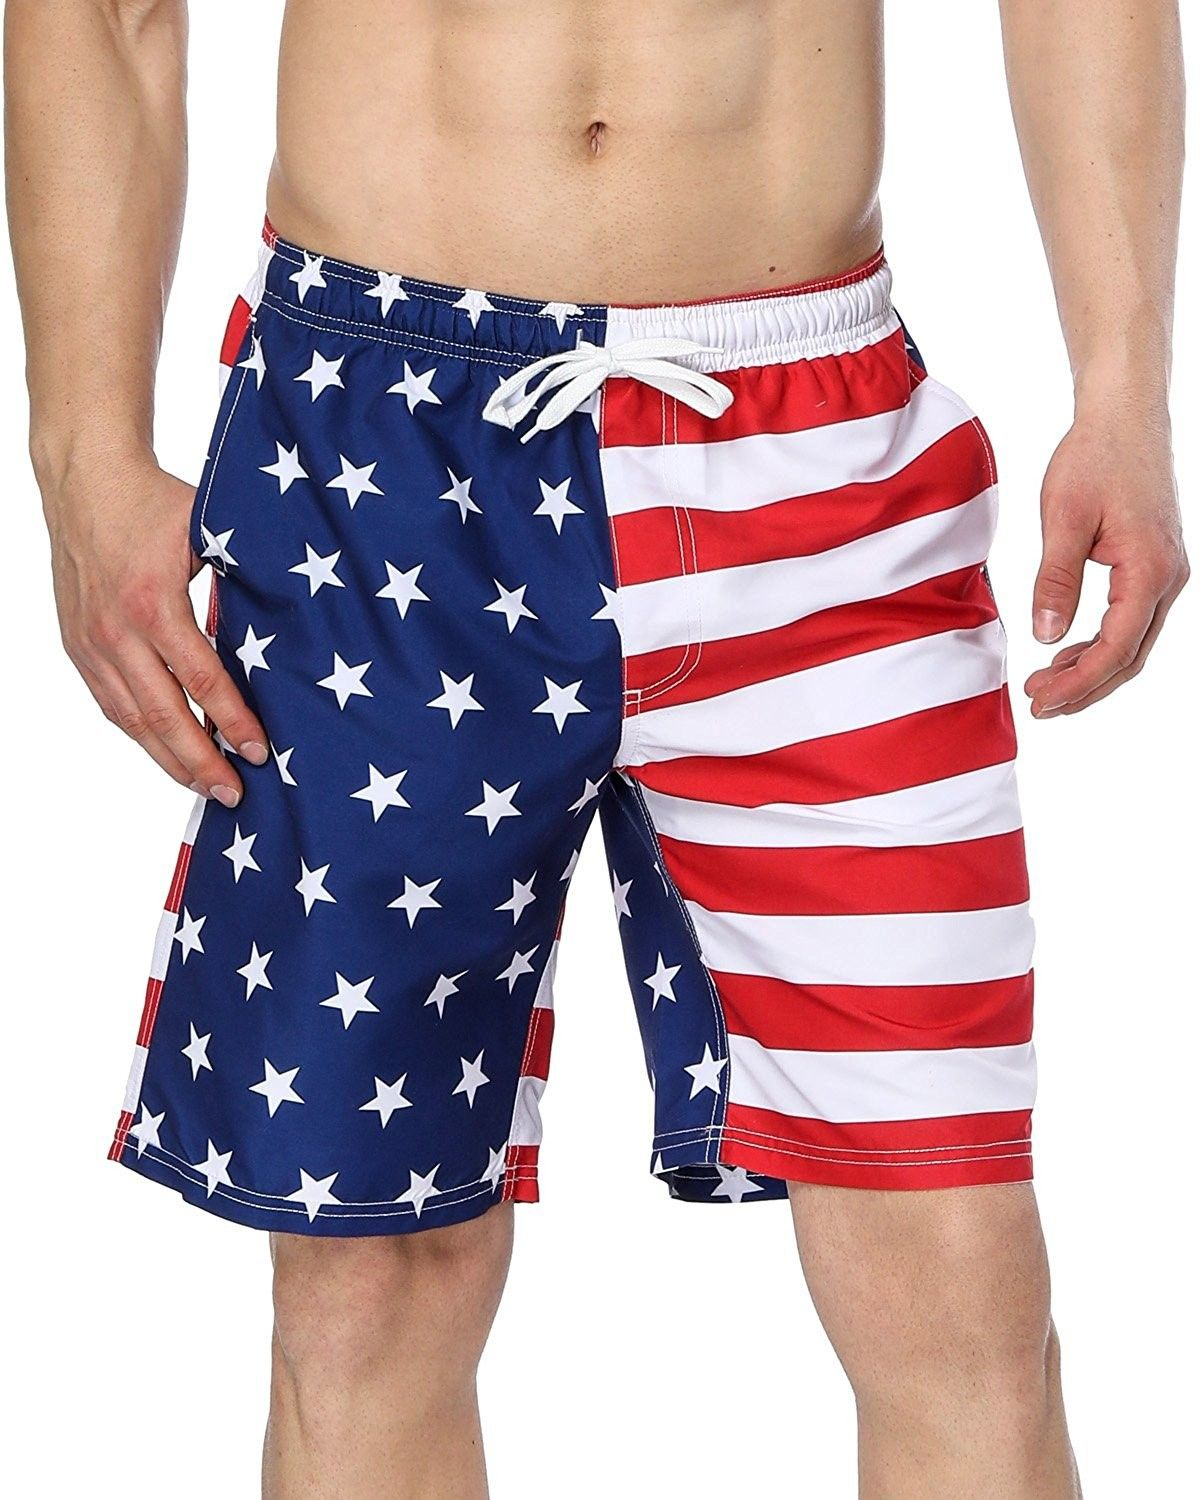 6b3eca0682 Men's Clothing, Swim, Board Shorts, Men's American Flag Swim Trunks US Flag  Bathing Suit Board Swim Shorts - American Flag 3 - CY18C9C7ICS #fashion # Swim ...